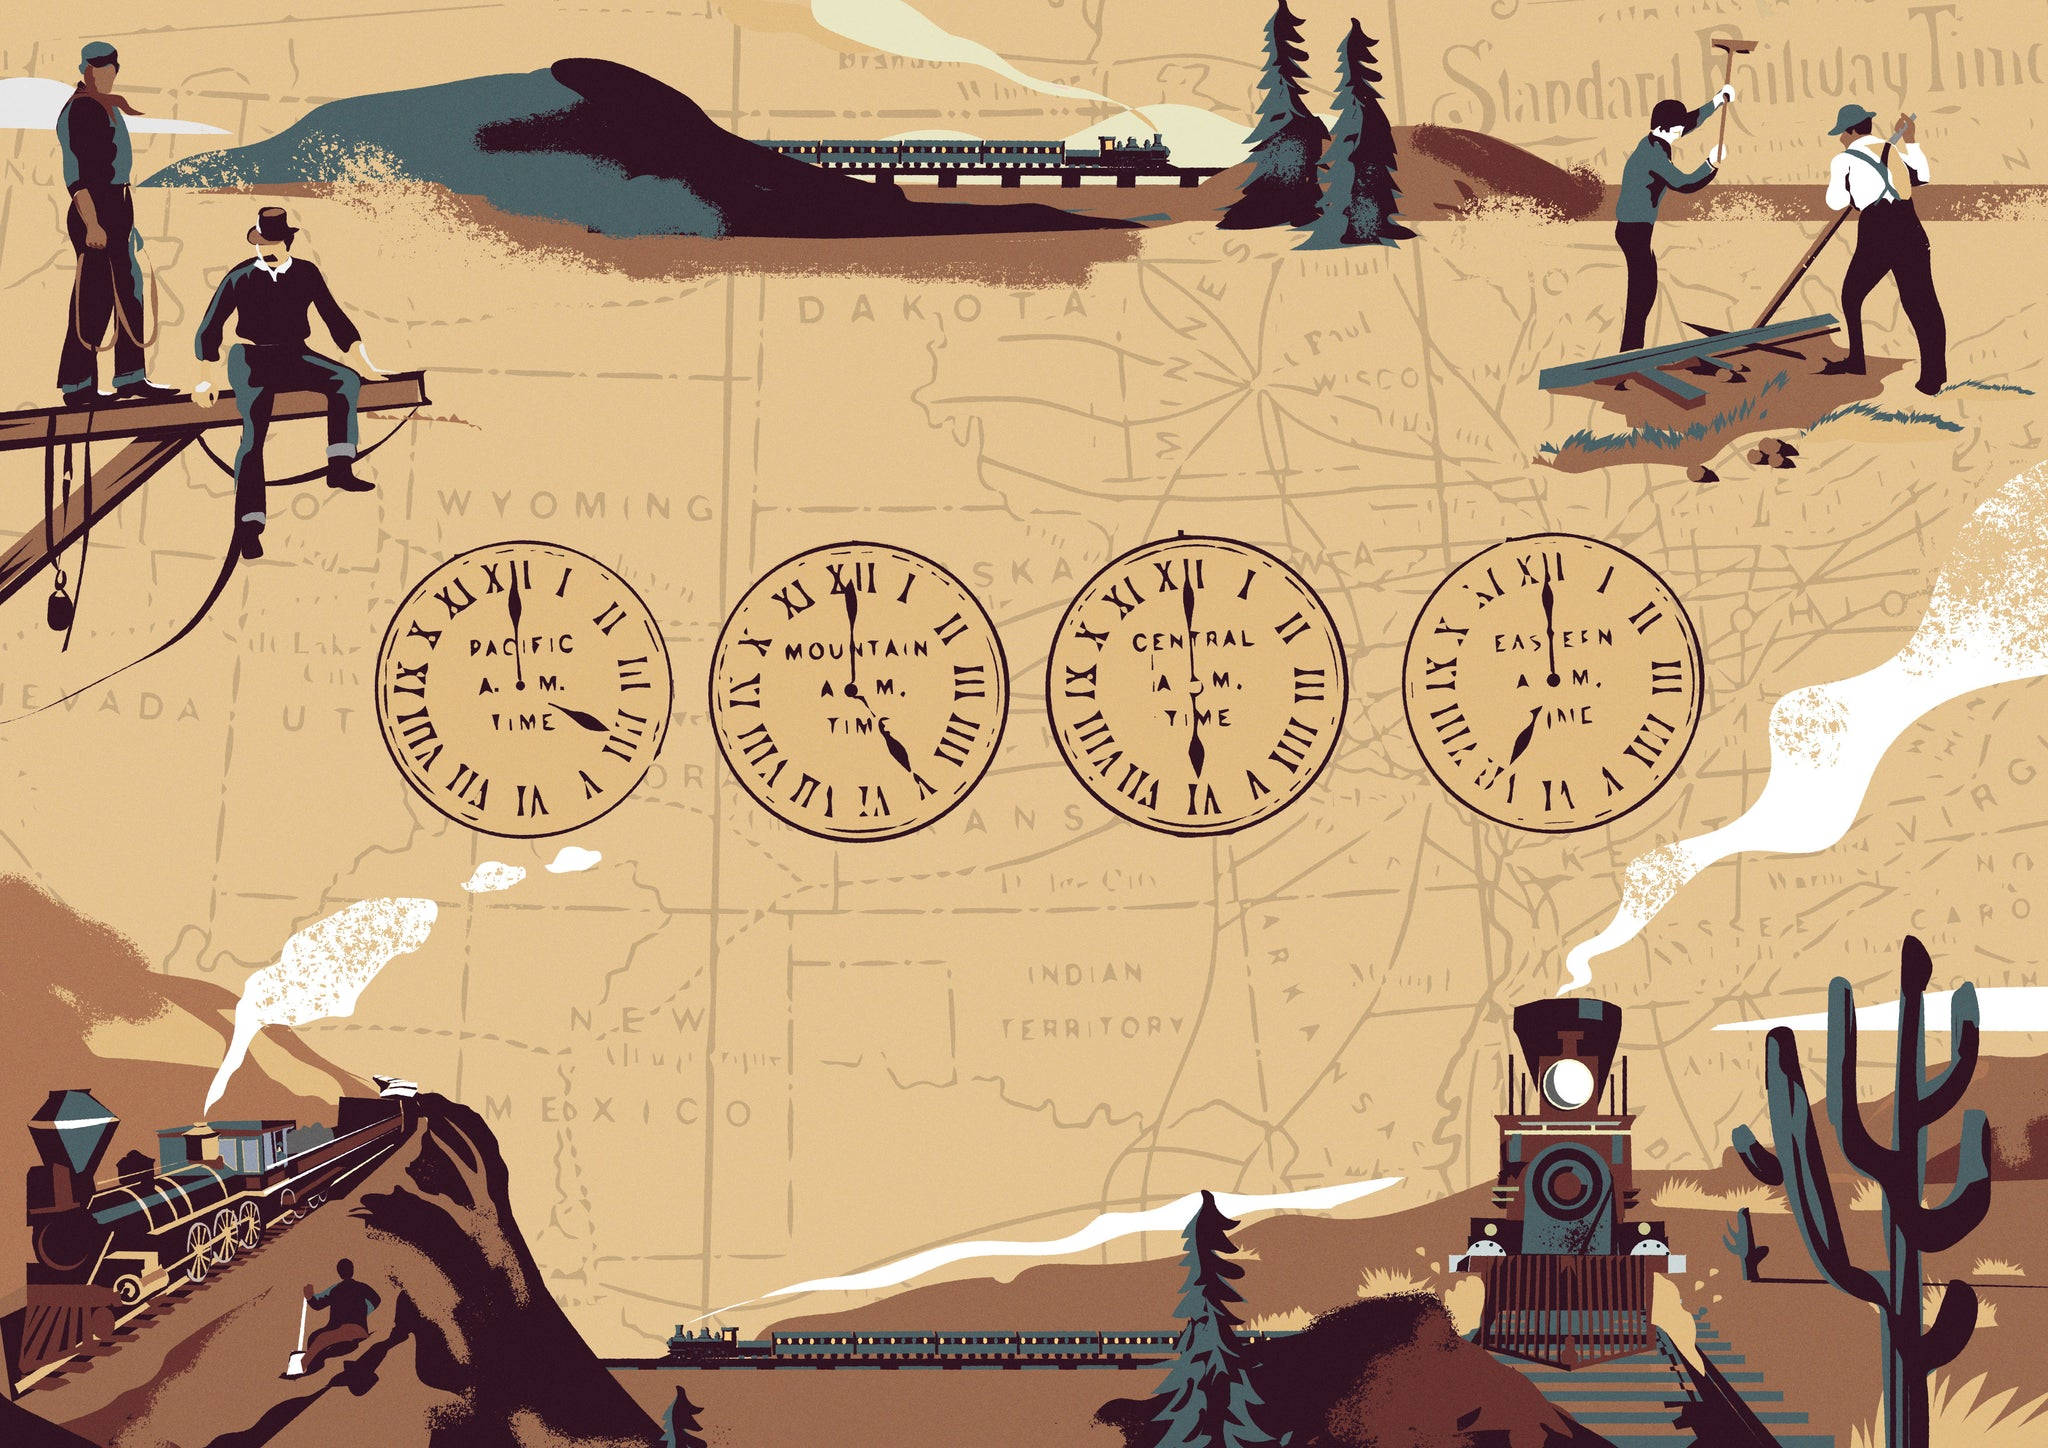 Prints Harry illustration of time zones and railway construction